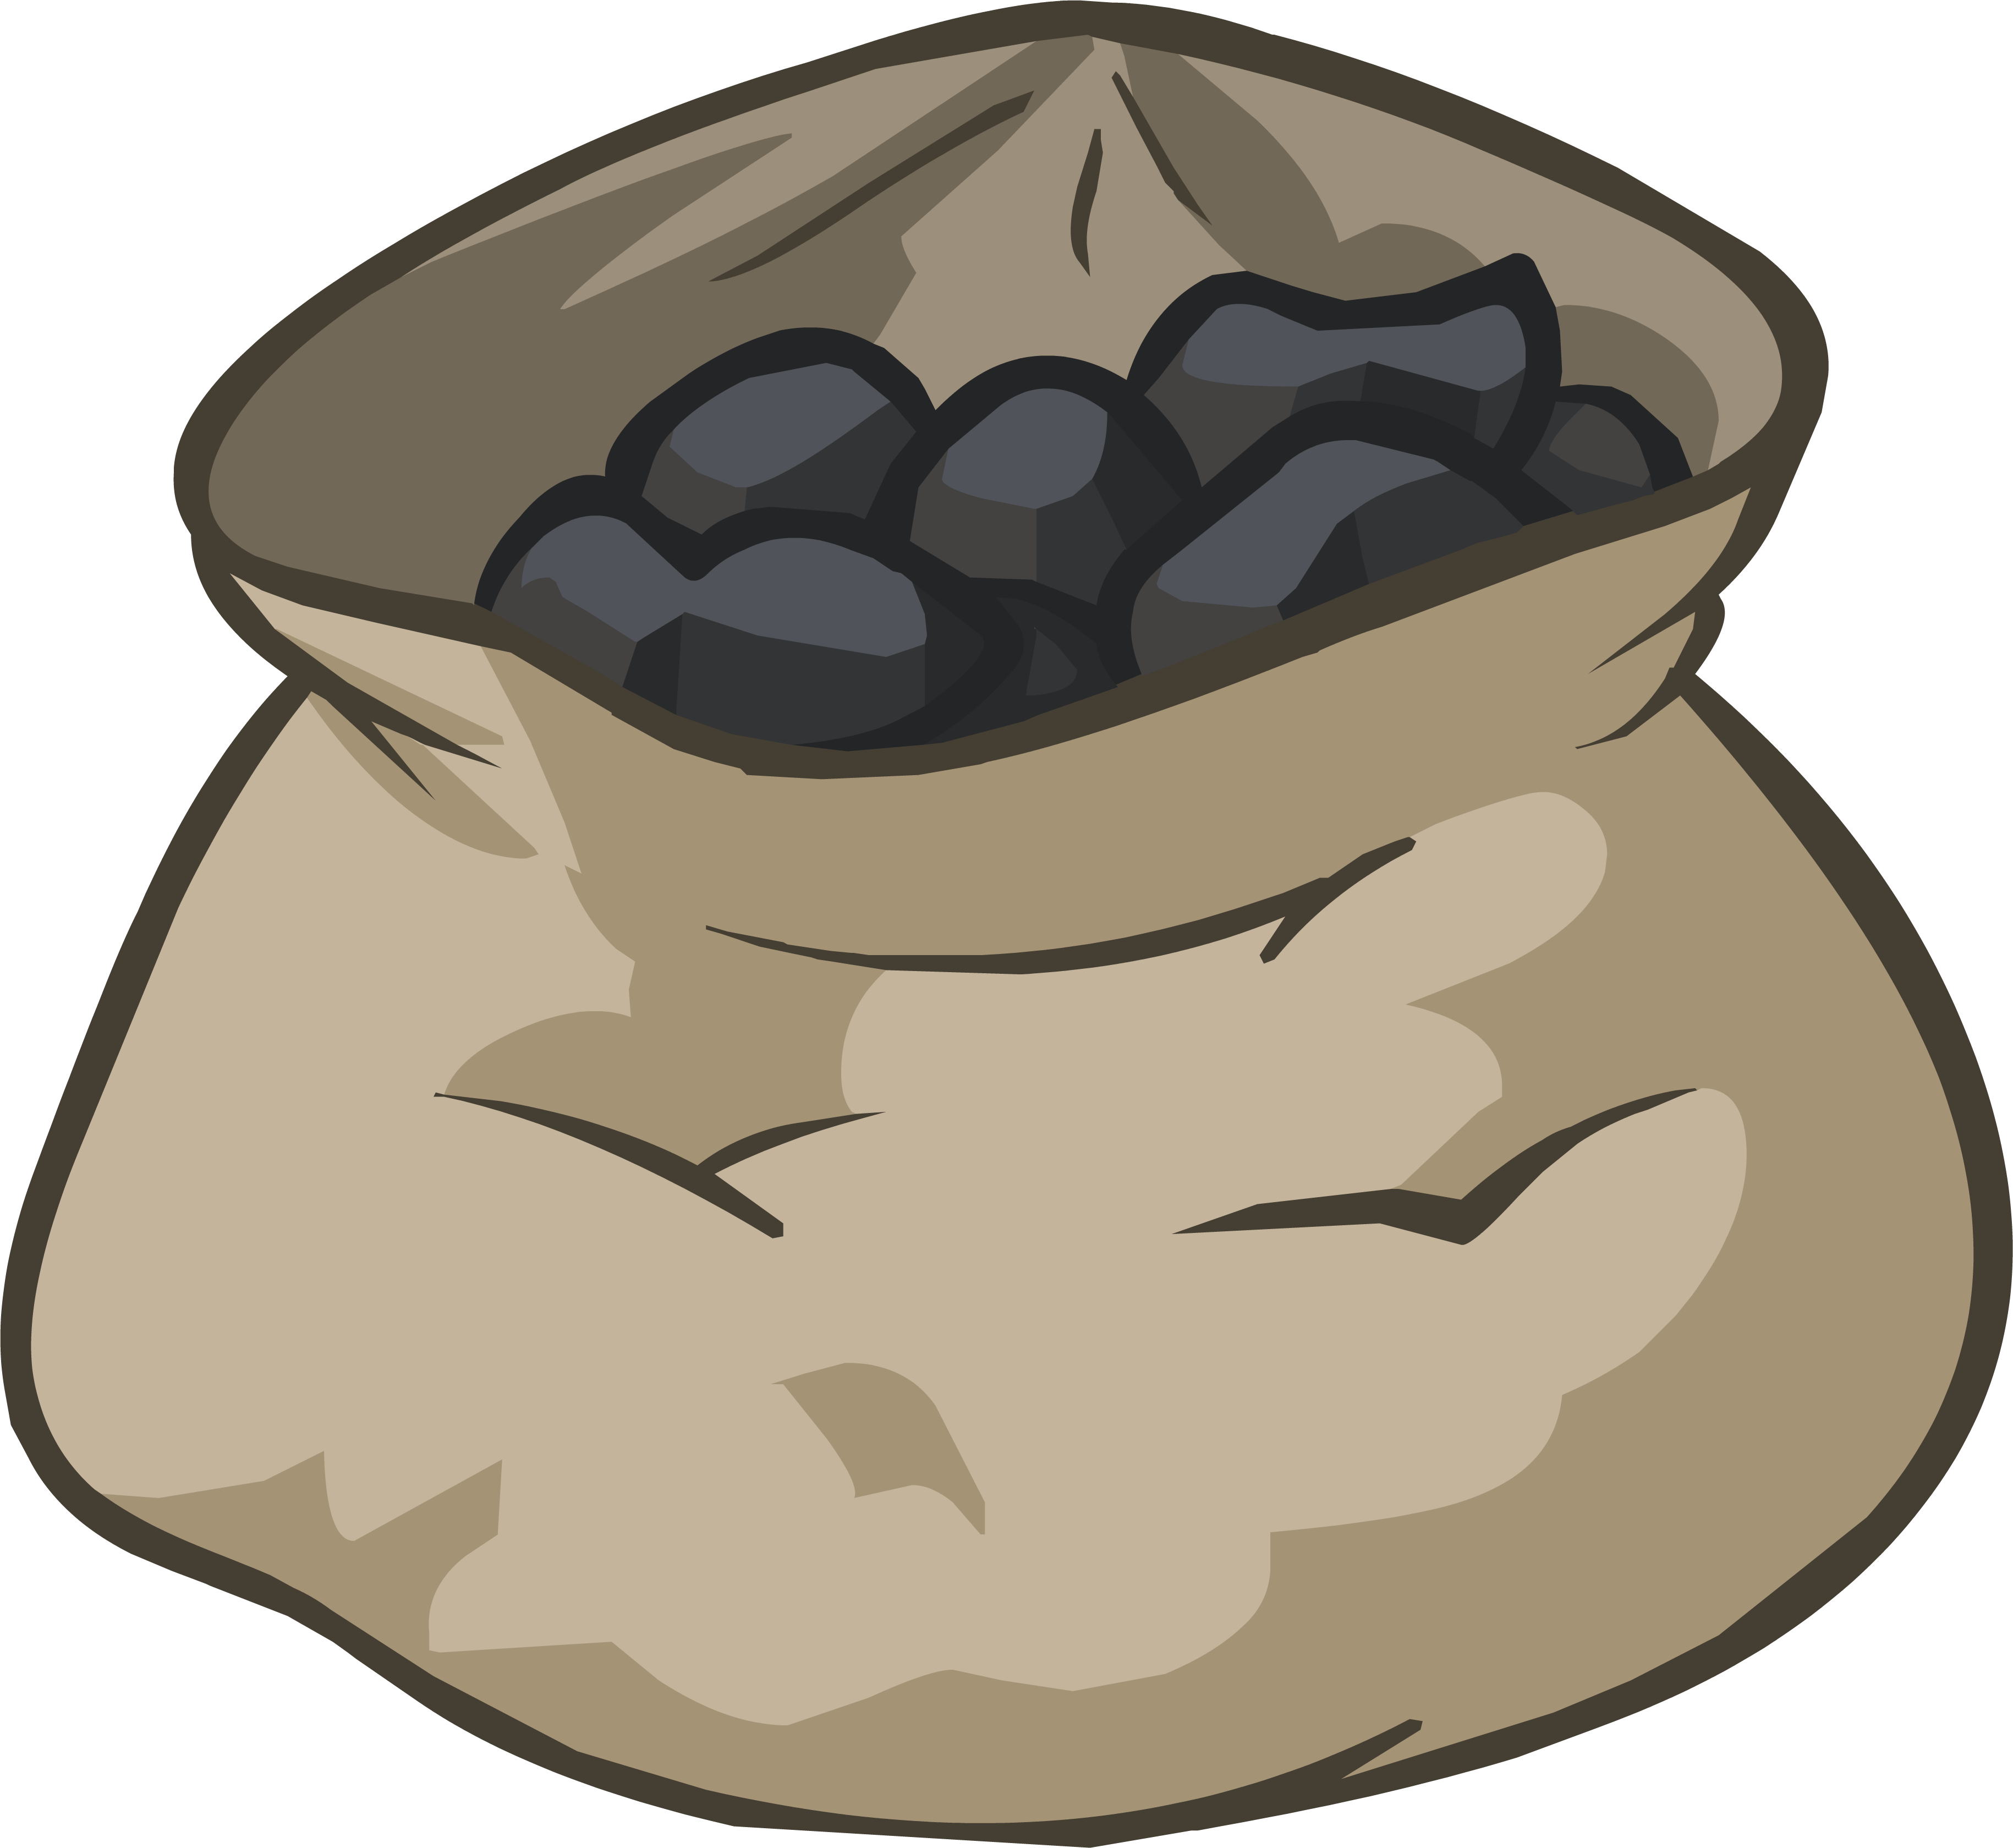 Of by angela png. Coal clipart bag coal